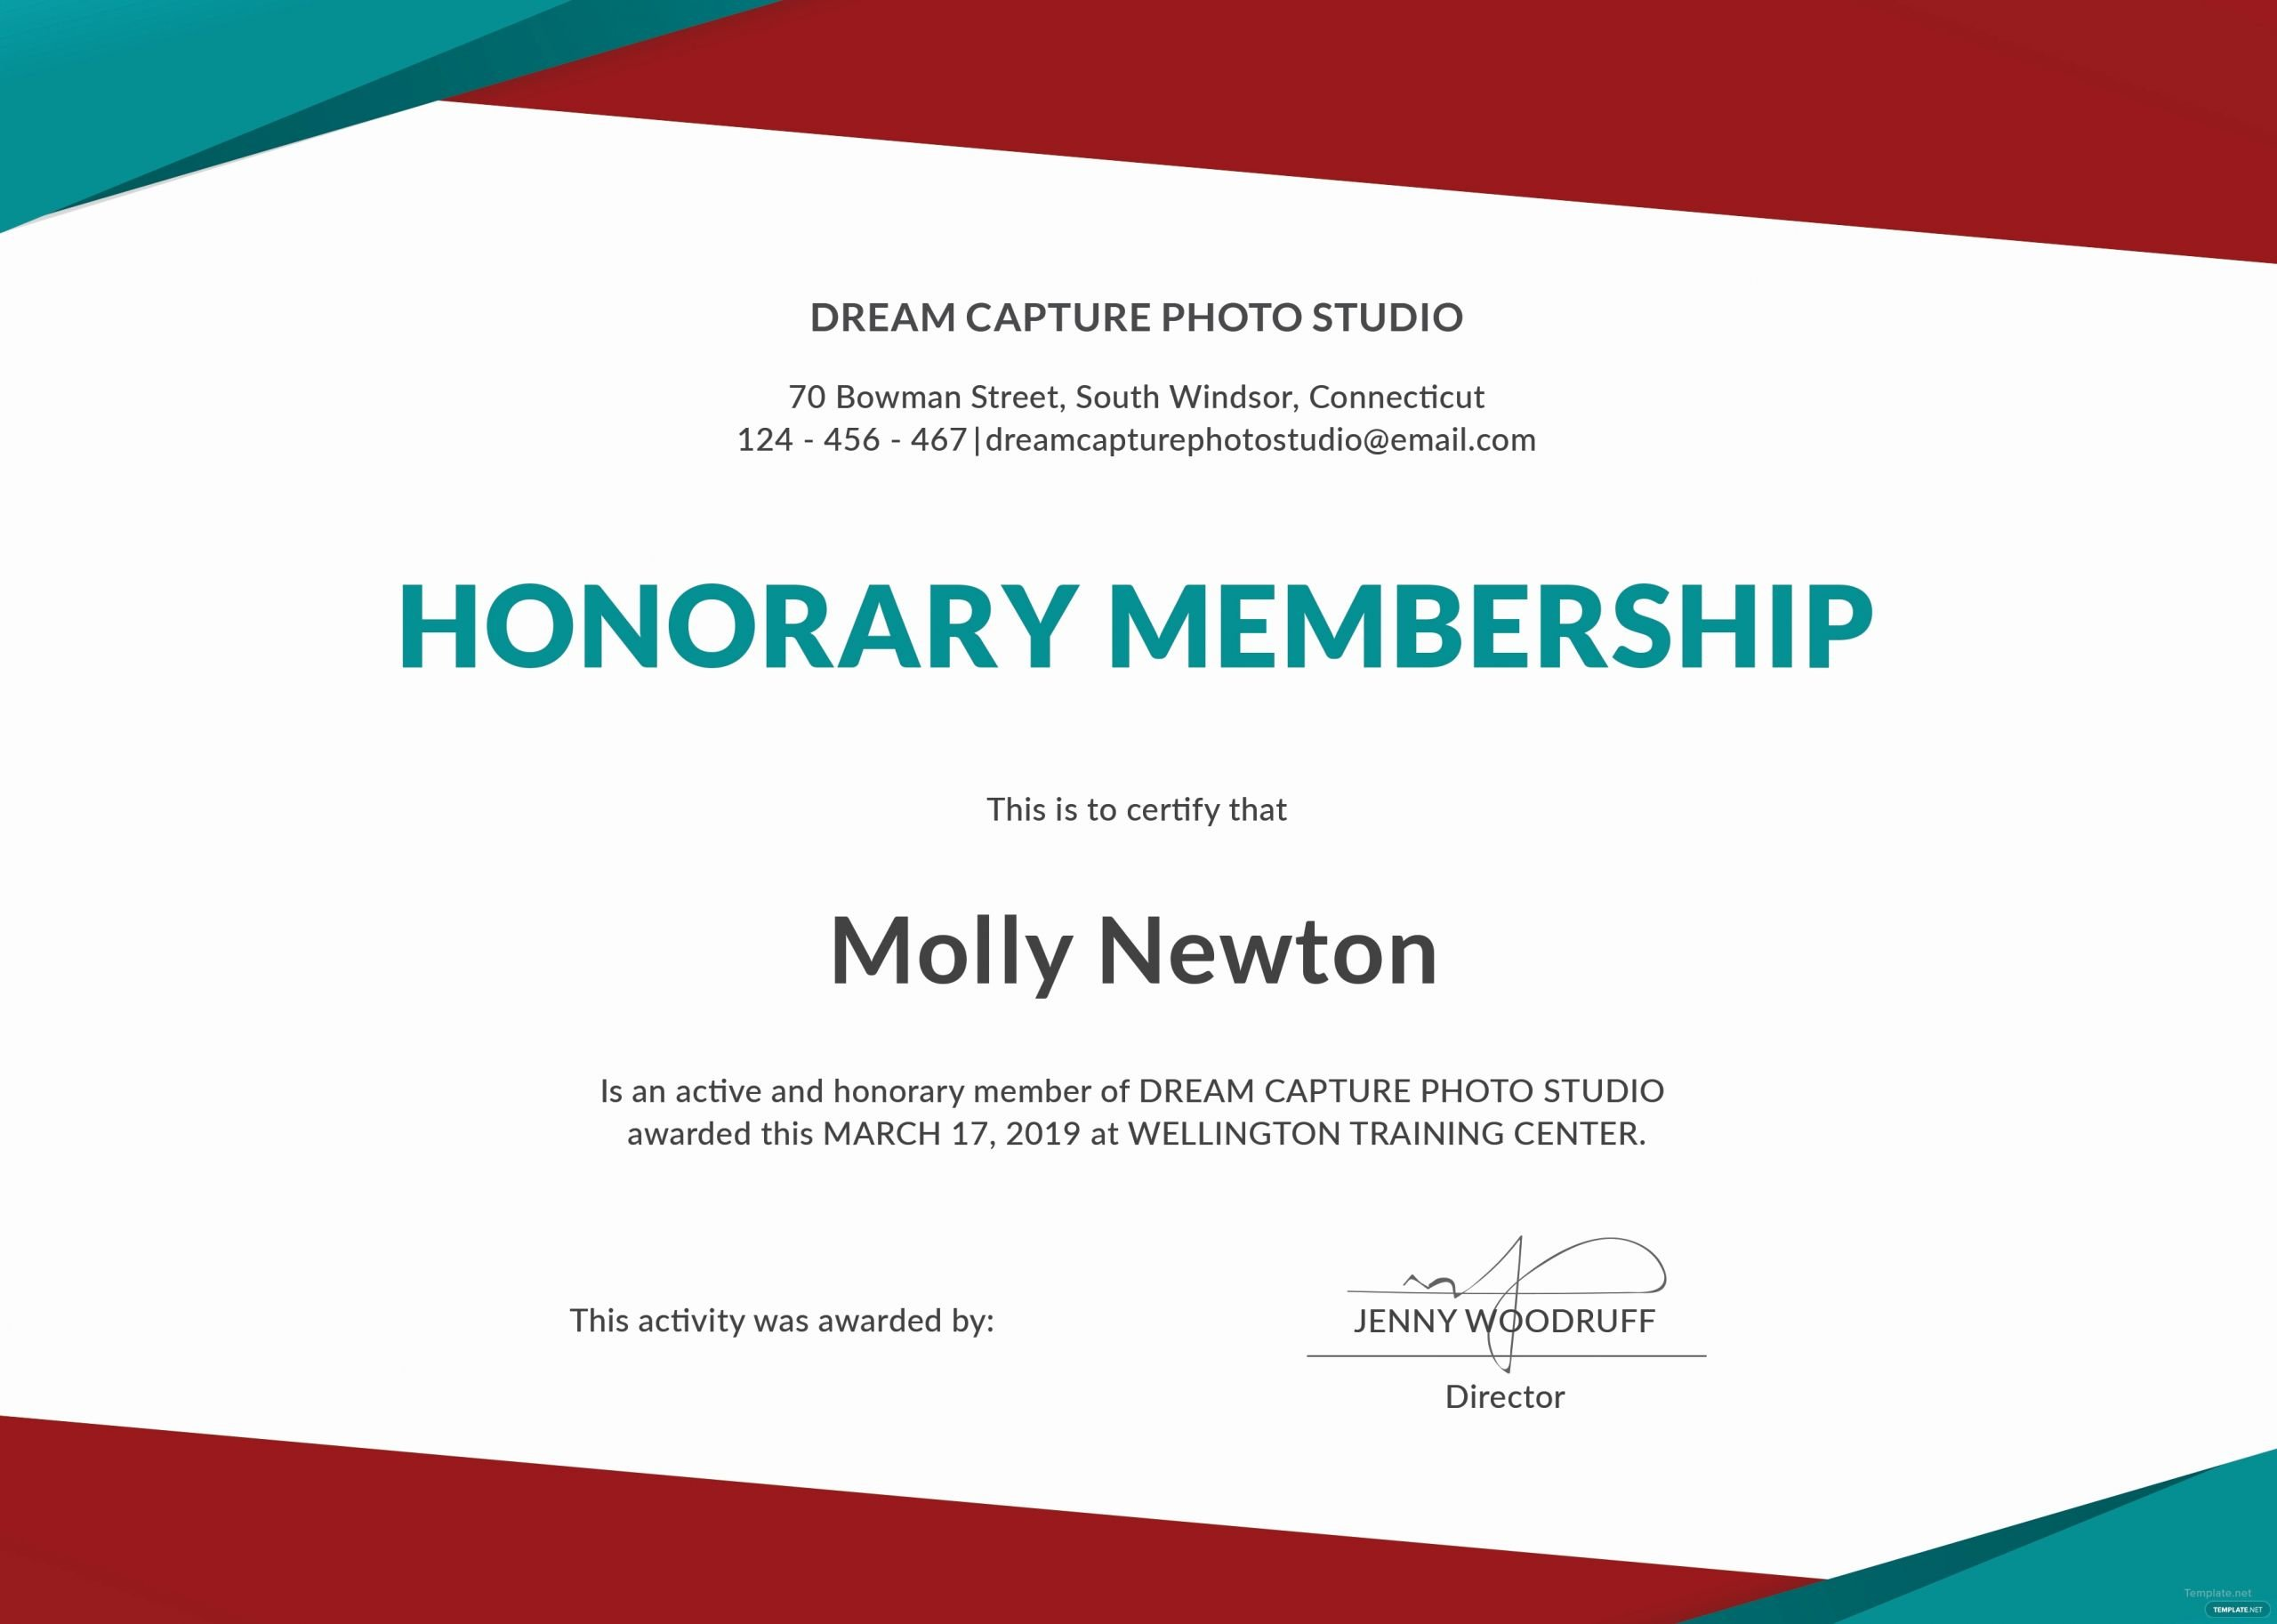 Honorary Member Certificate Template Awesome Honorary Membership Certificate Sample